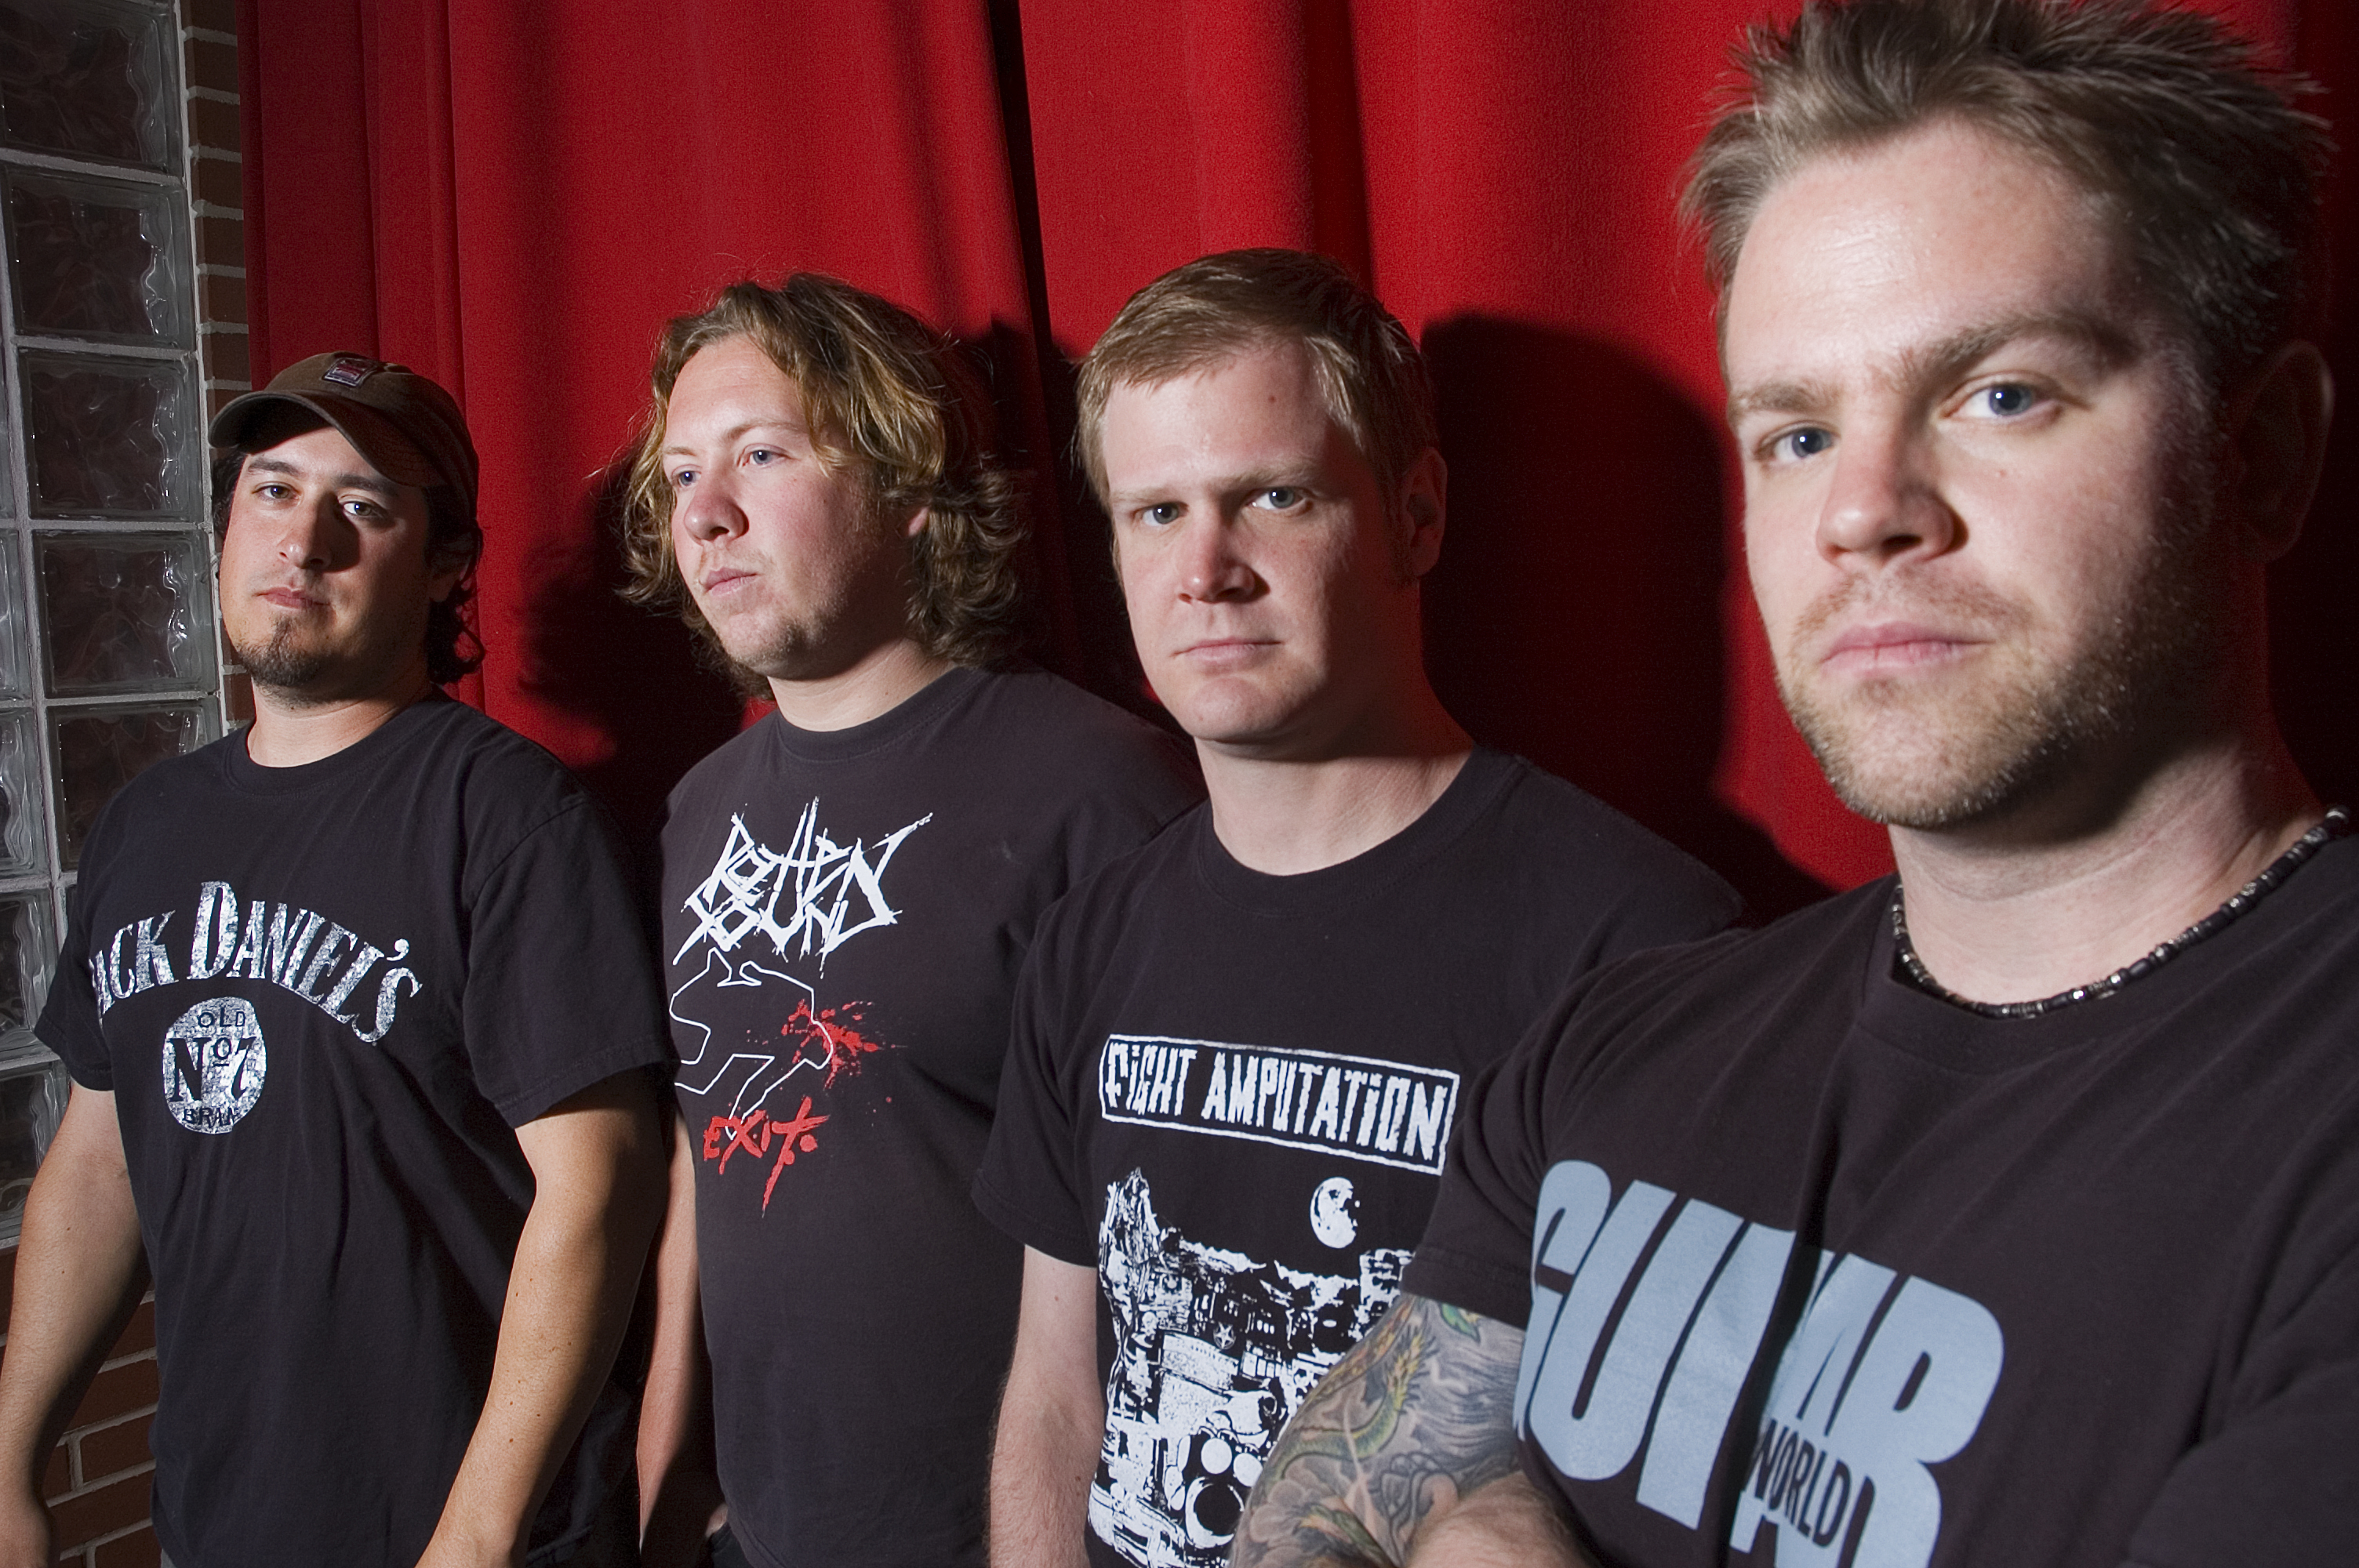 myspace com therealpigdestroyer download explosions in ward 6 downloadPig Destroyer Explosions In Ward 6